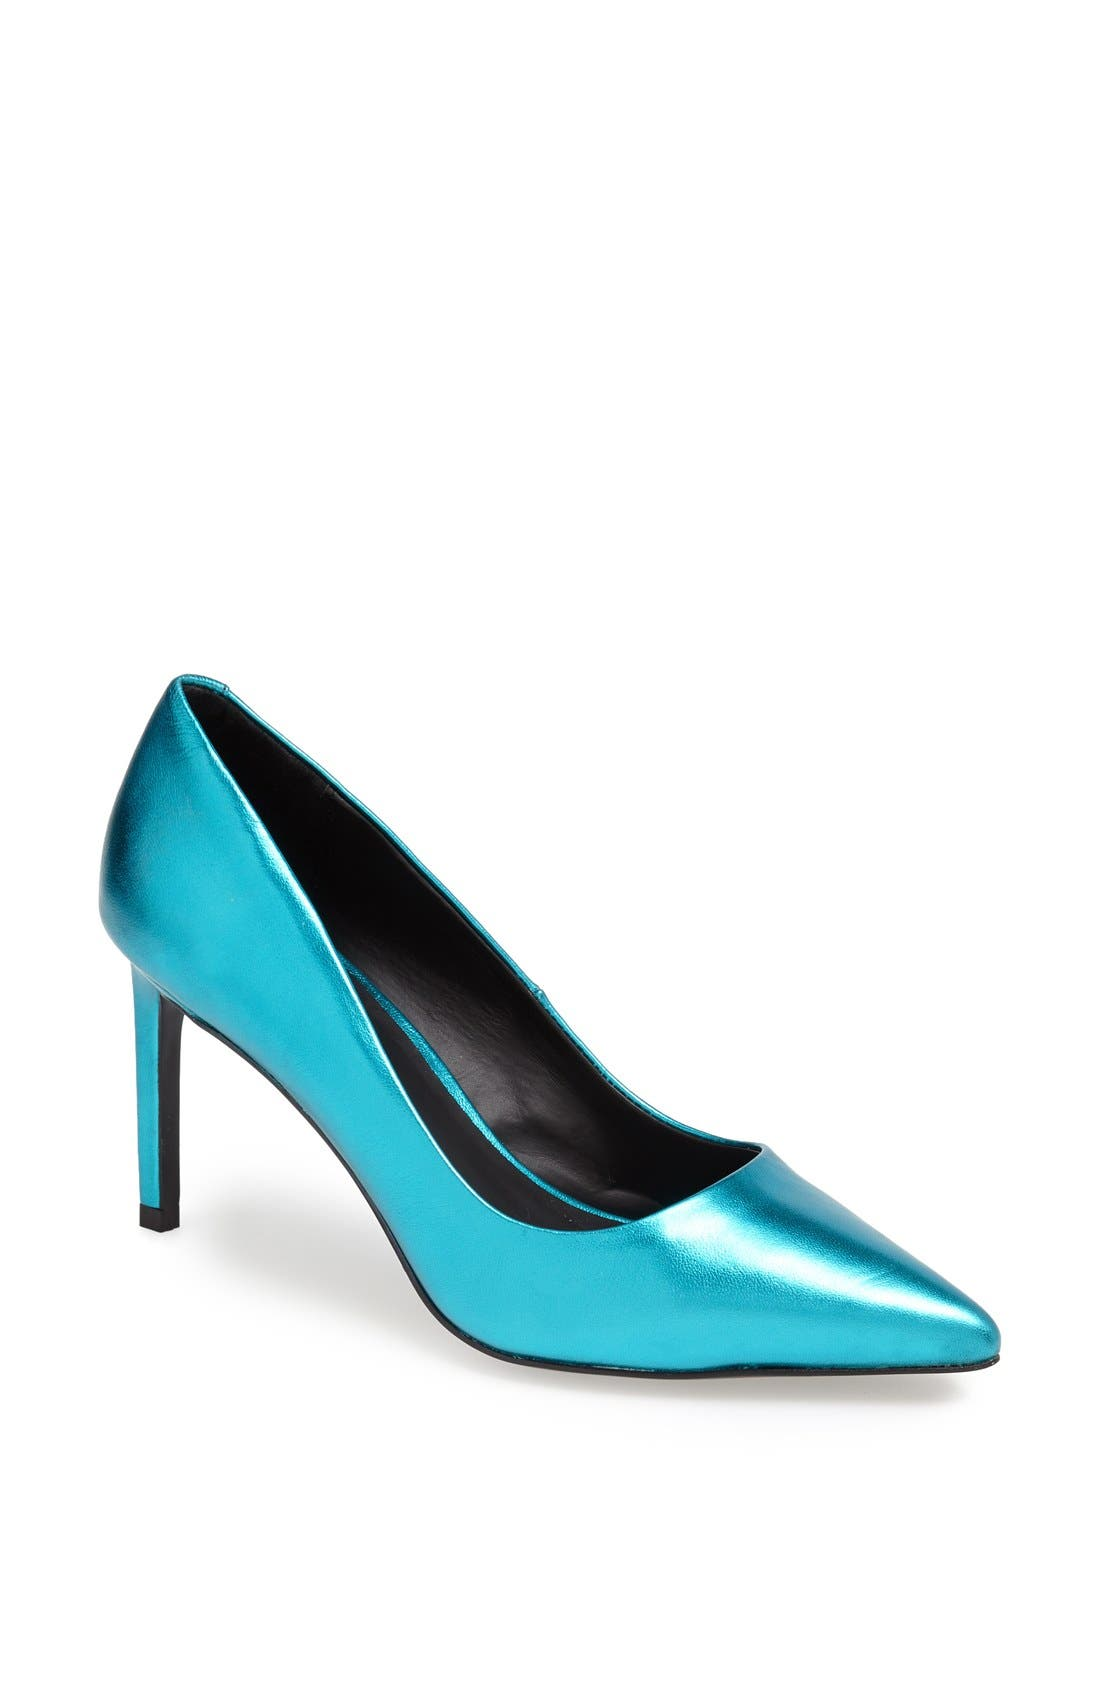 Main Image - KG Kurt Geiger 'Bea' Pointy Toe Pump